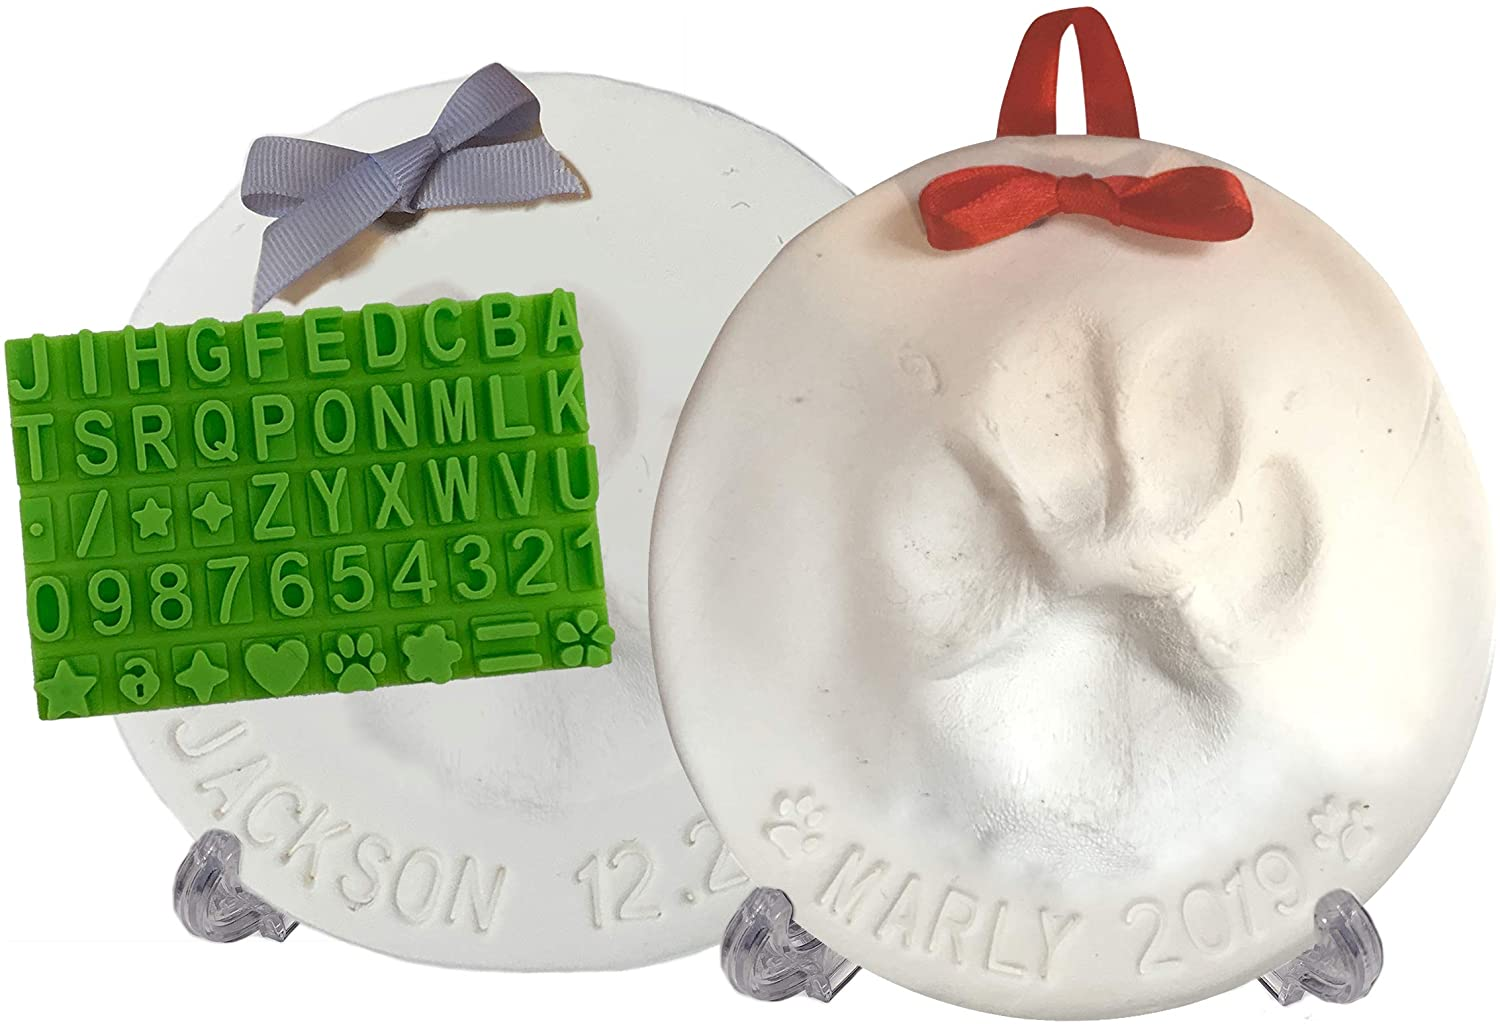 Ultimate Pawprint Keepsake Kit (Makes 2) - Paw Print Christmas Ornament w/ Bonus Personalization Tool & Display Stands! For Dogs, Cats & Pets. Non-toxic. Clay Air-Dries Soft, Light & Uncrackable.